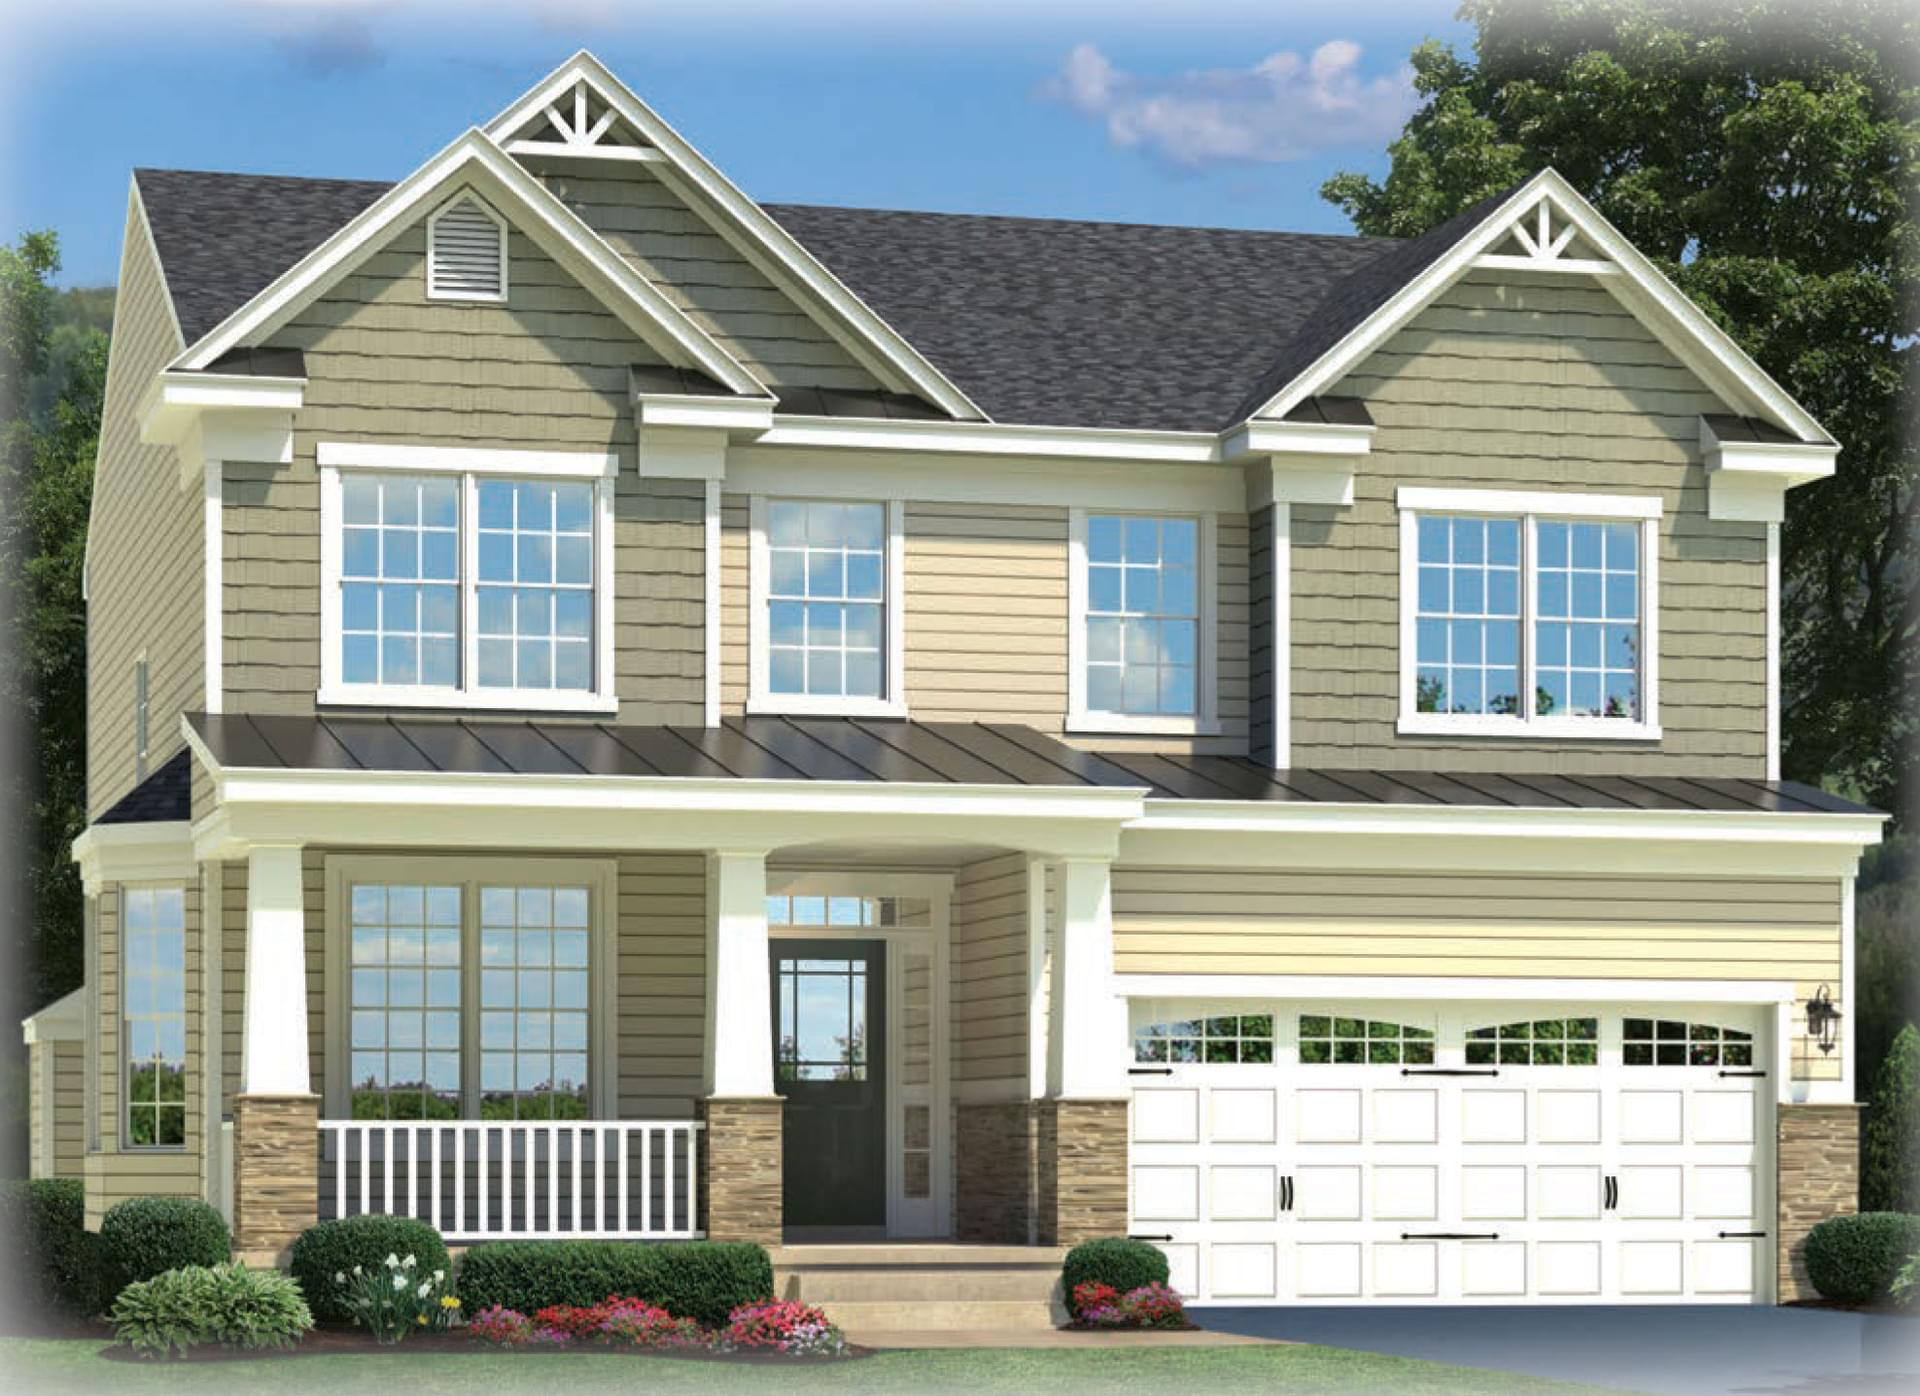 The Dayton New Home In Severn Md Crossland Farm From